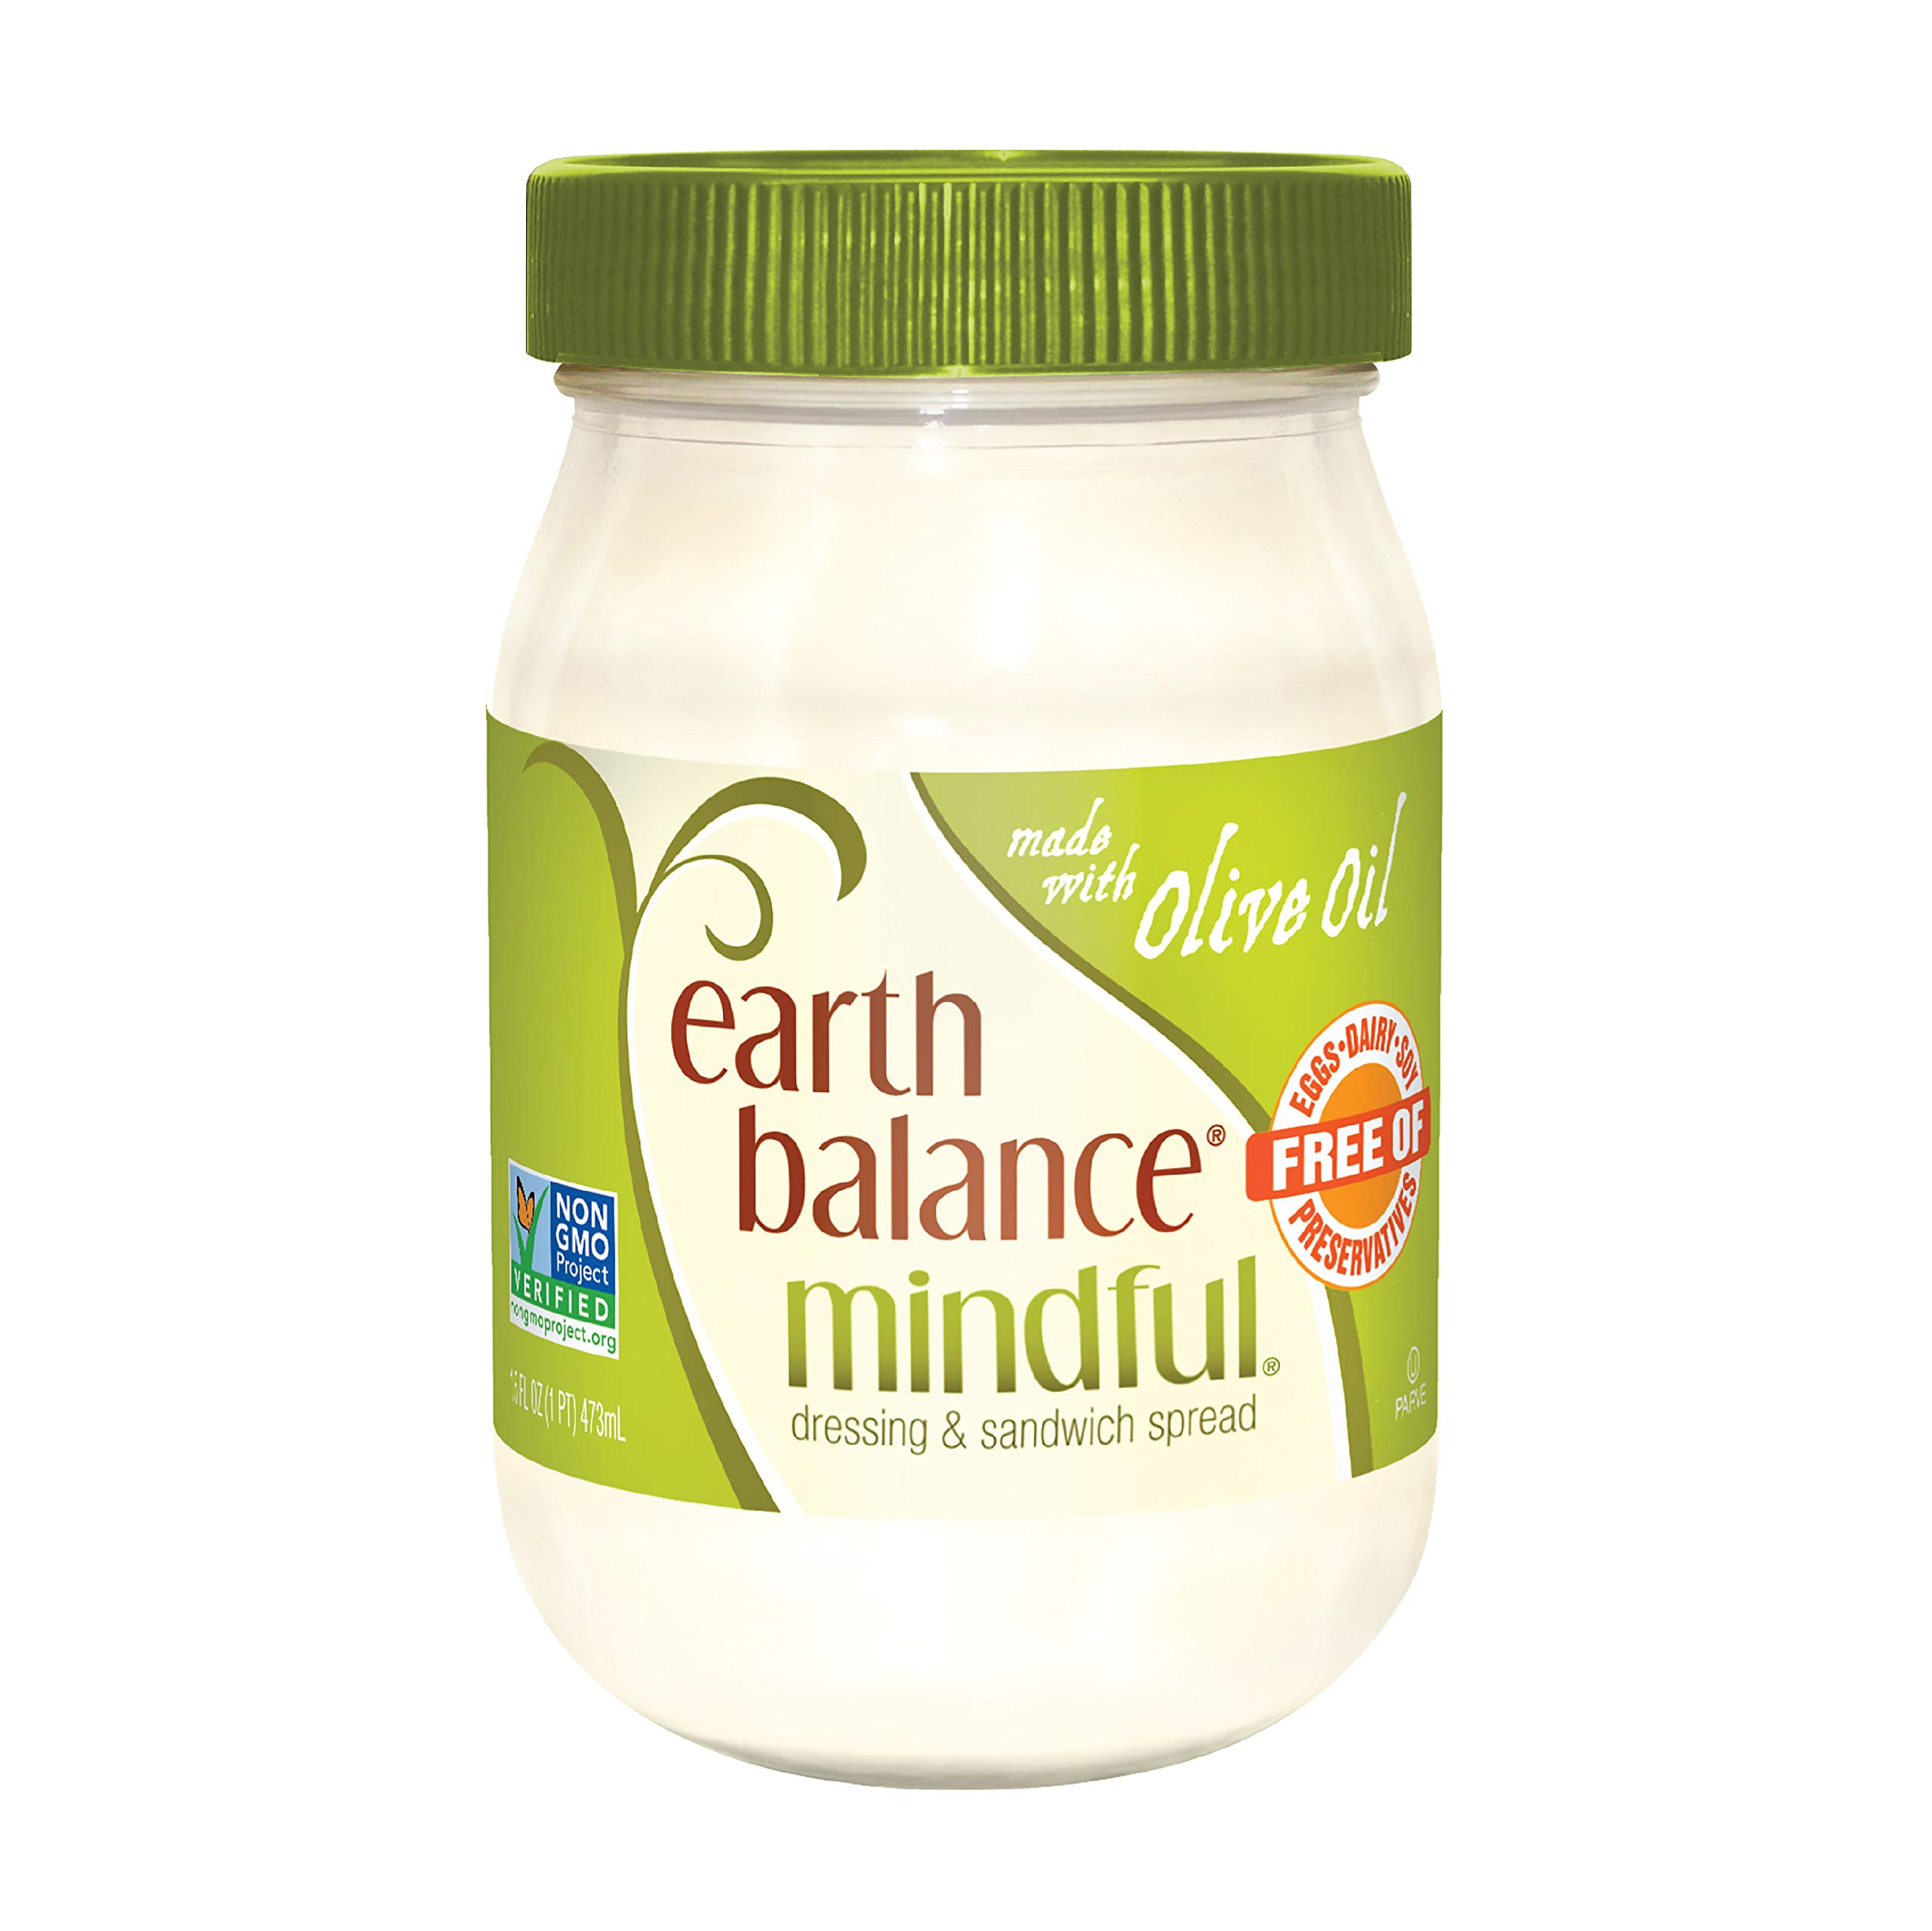 Earth Balance Mindful Dressing & Sandwich Spread, Made With Olive Oil, 16 oz.